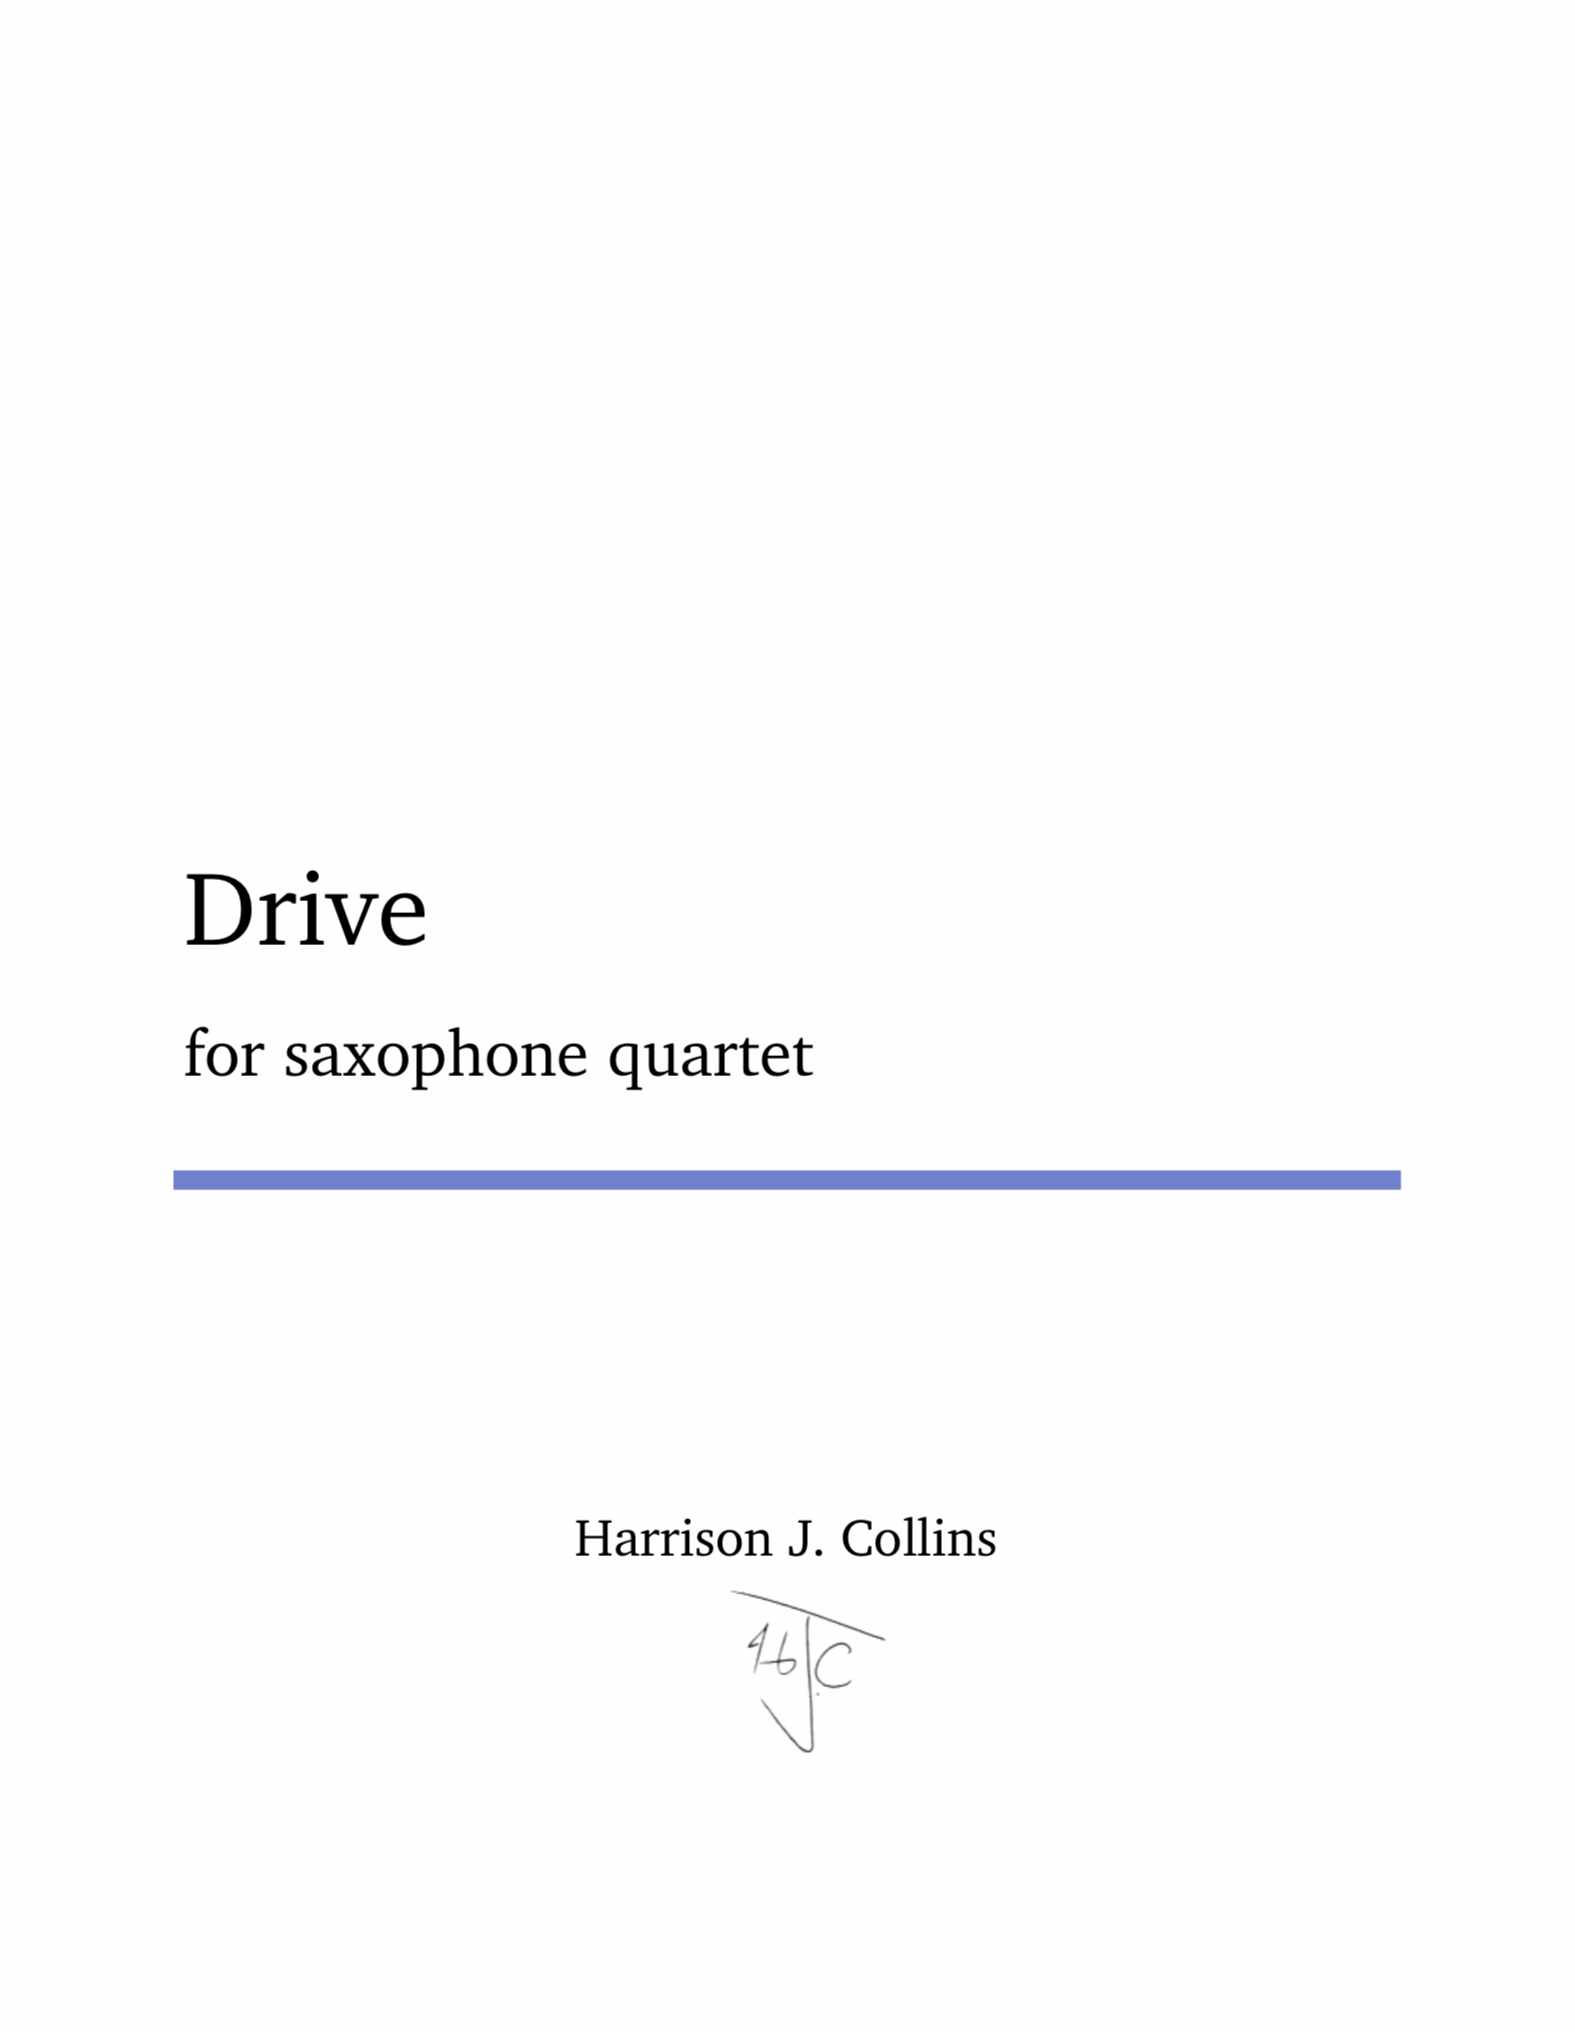 Drive by Harrison Collins